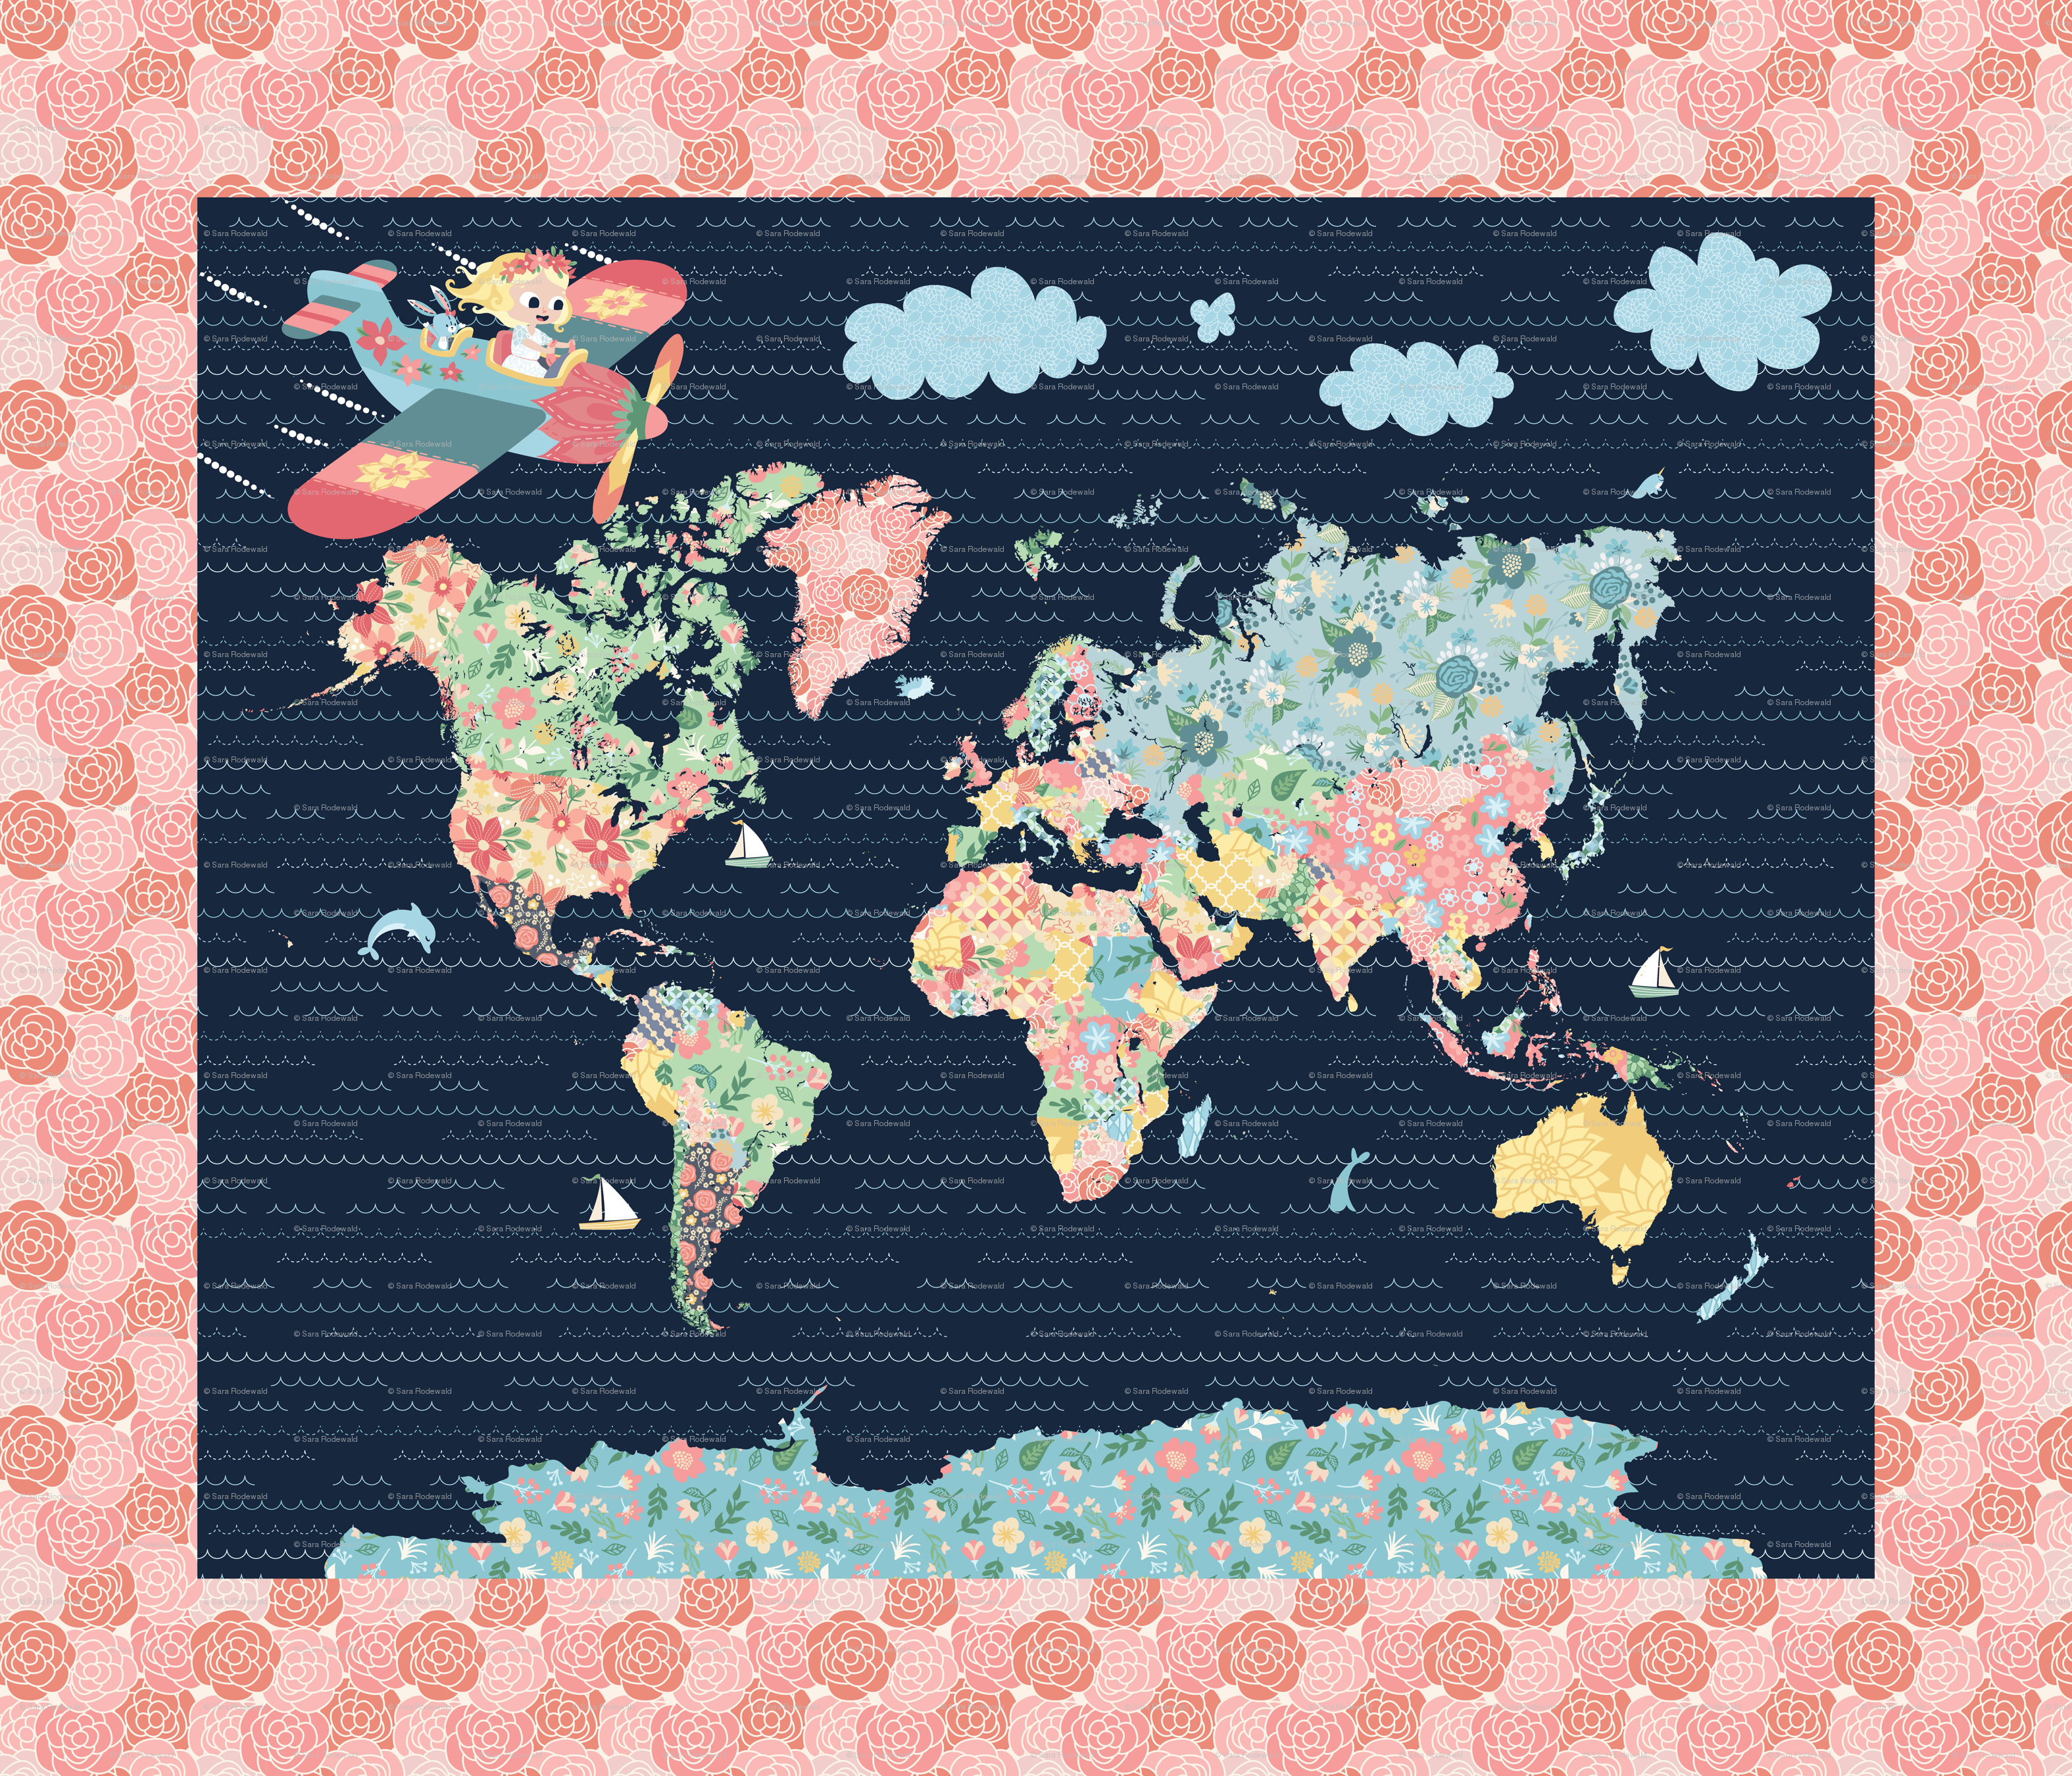 42x36 Nomi & Brave Travel the World Map Panel giftwrap ...